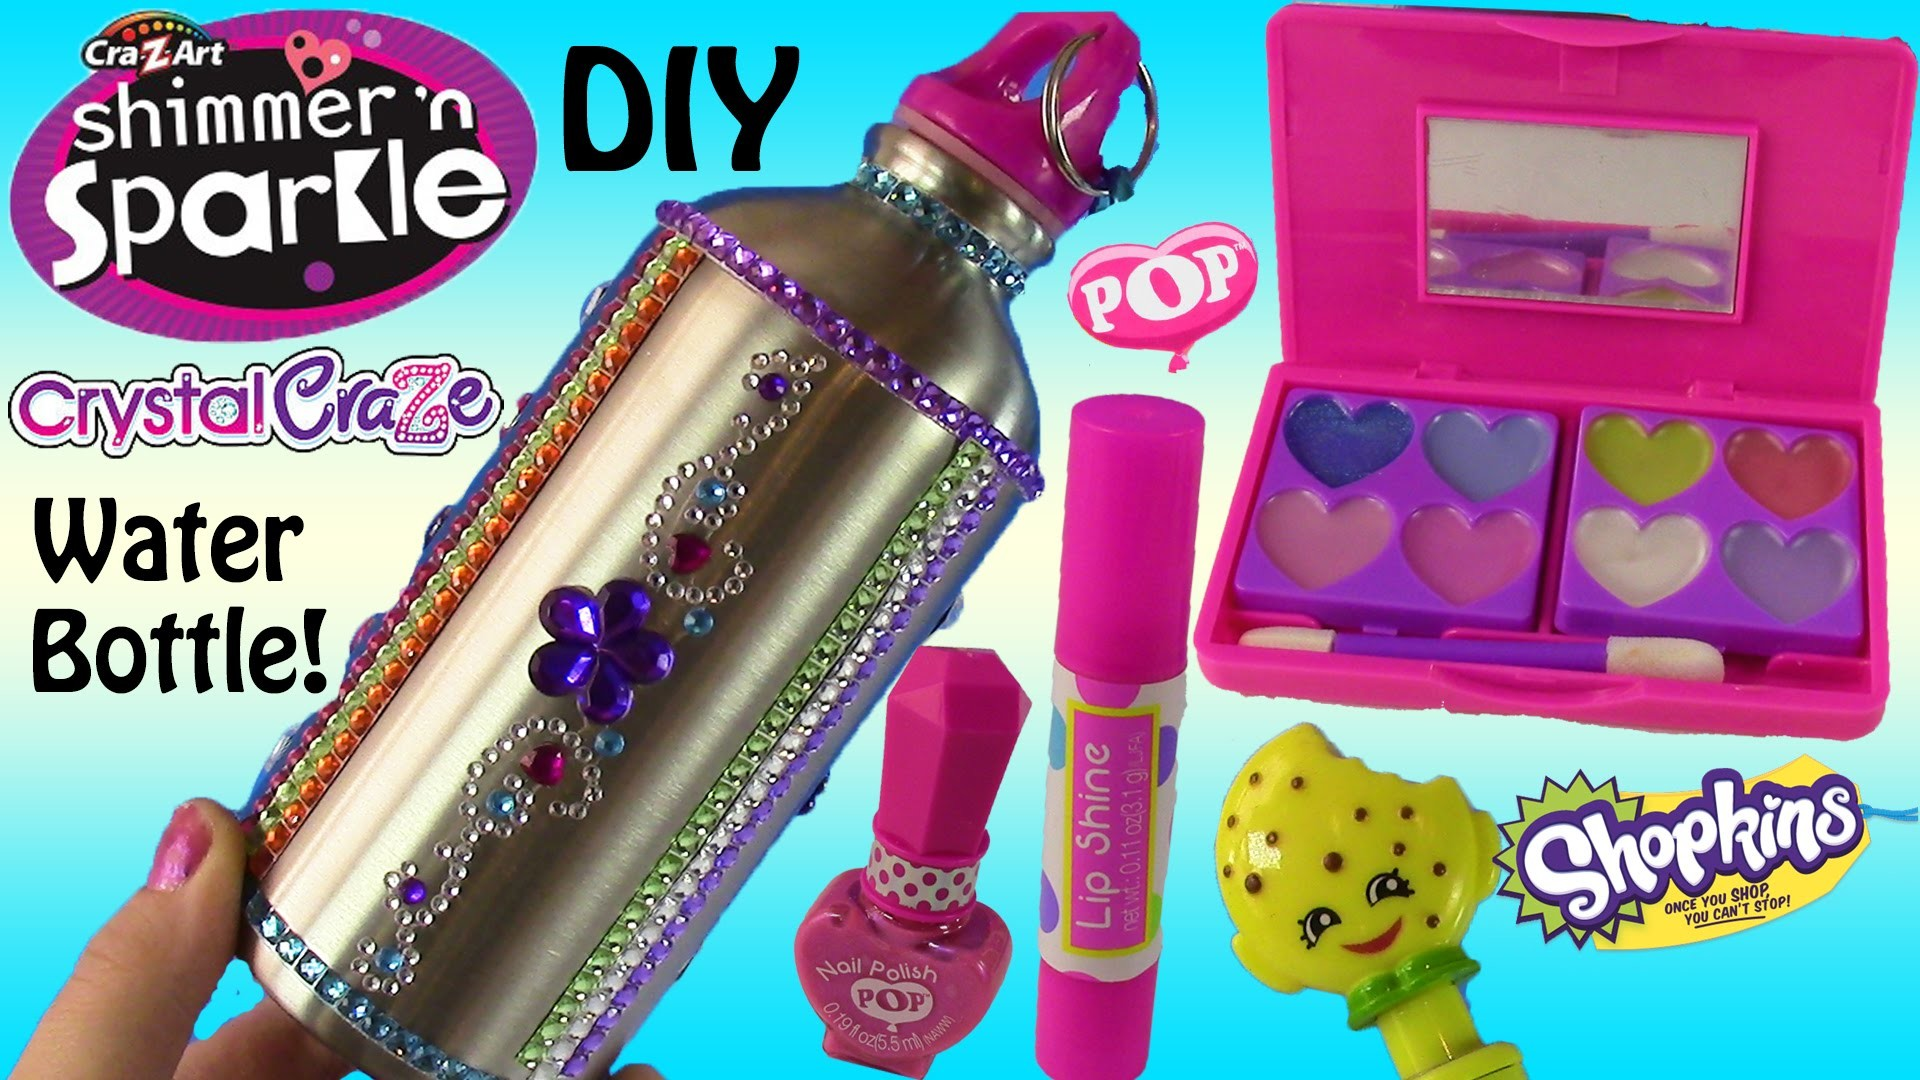 Cra-Z-Art Shimmer 'n Sparkle DIY Water Bottle!Beauty Set Lip Gloss Nail Polish! SHOPKINS Pen